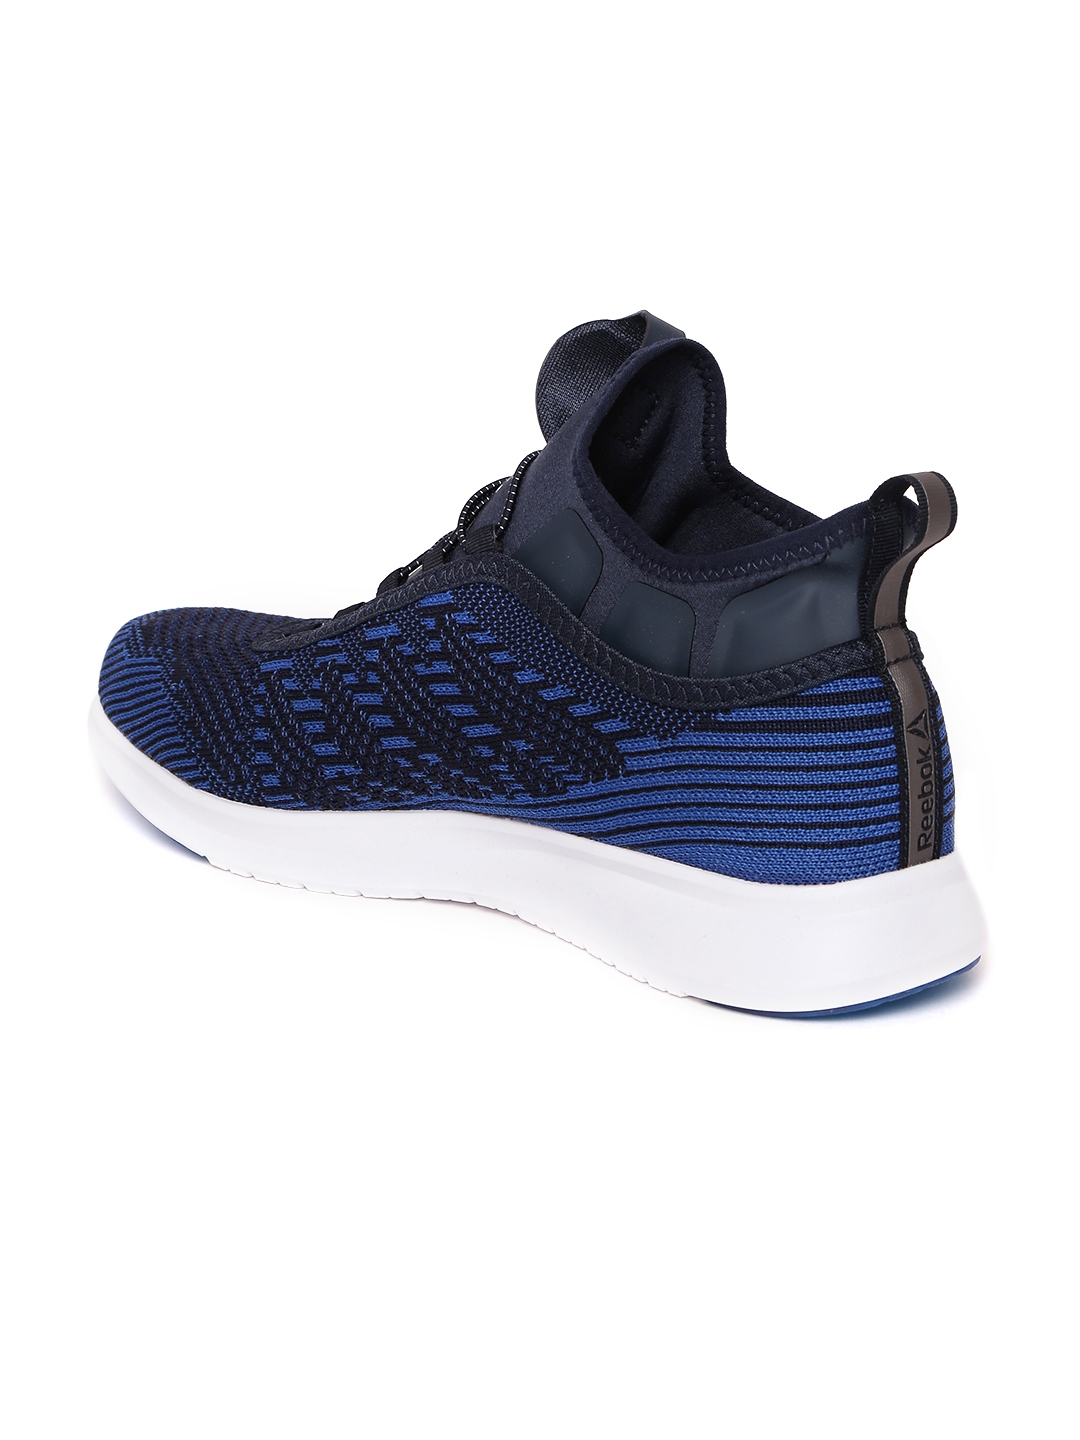 Buy Reebok Men Blue Pump Plus Ultraknit Running Shoes - Sports Shoes ... 1309b4500